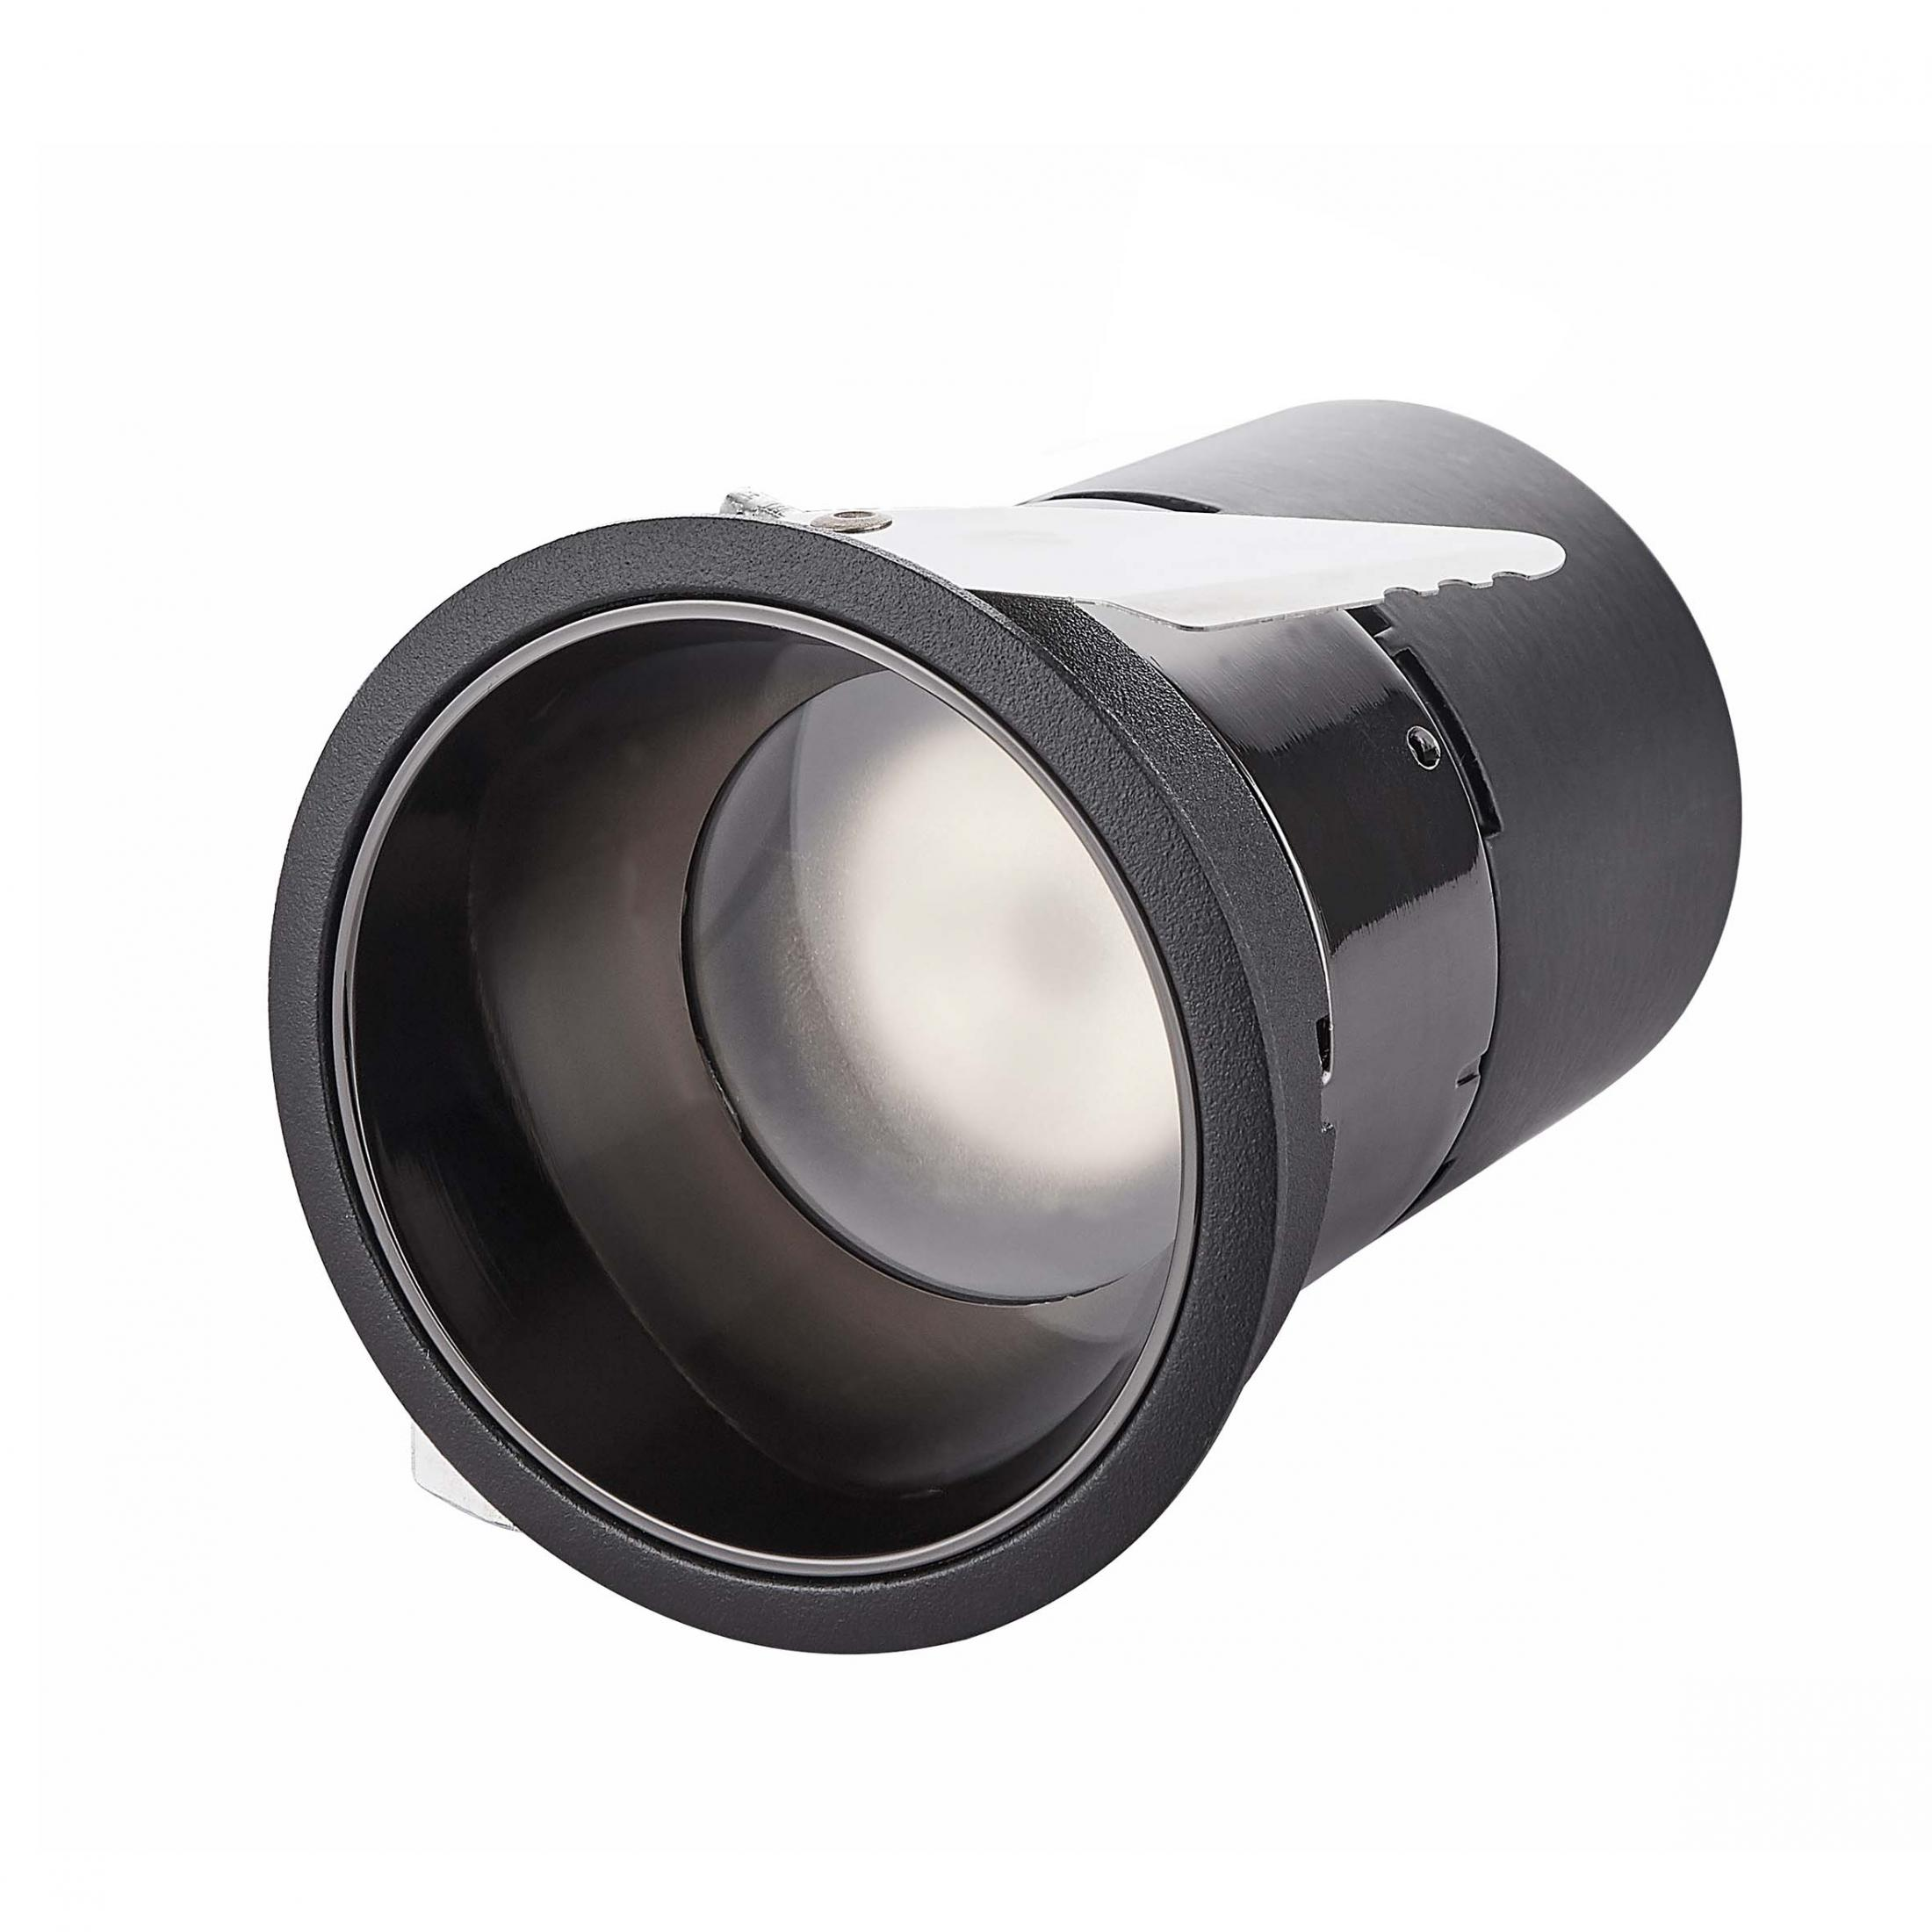 7W Anti-glare fixed recessed down light